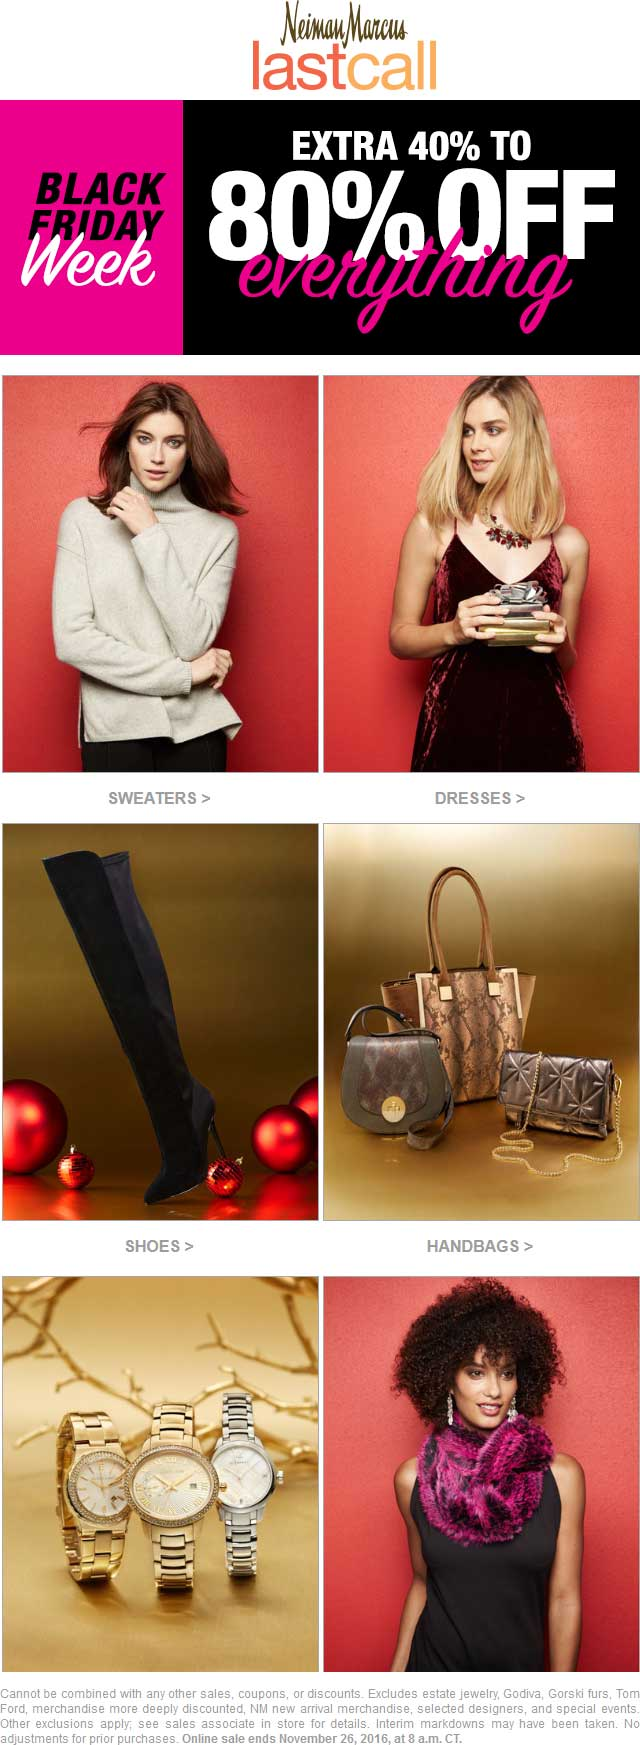 LastCall.com Promo Coupon Extra 40-80% off everything at Neiman Marcus Last Call, ditto online